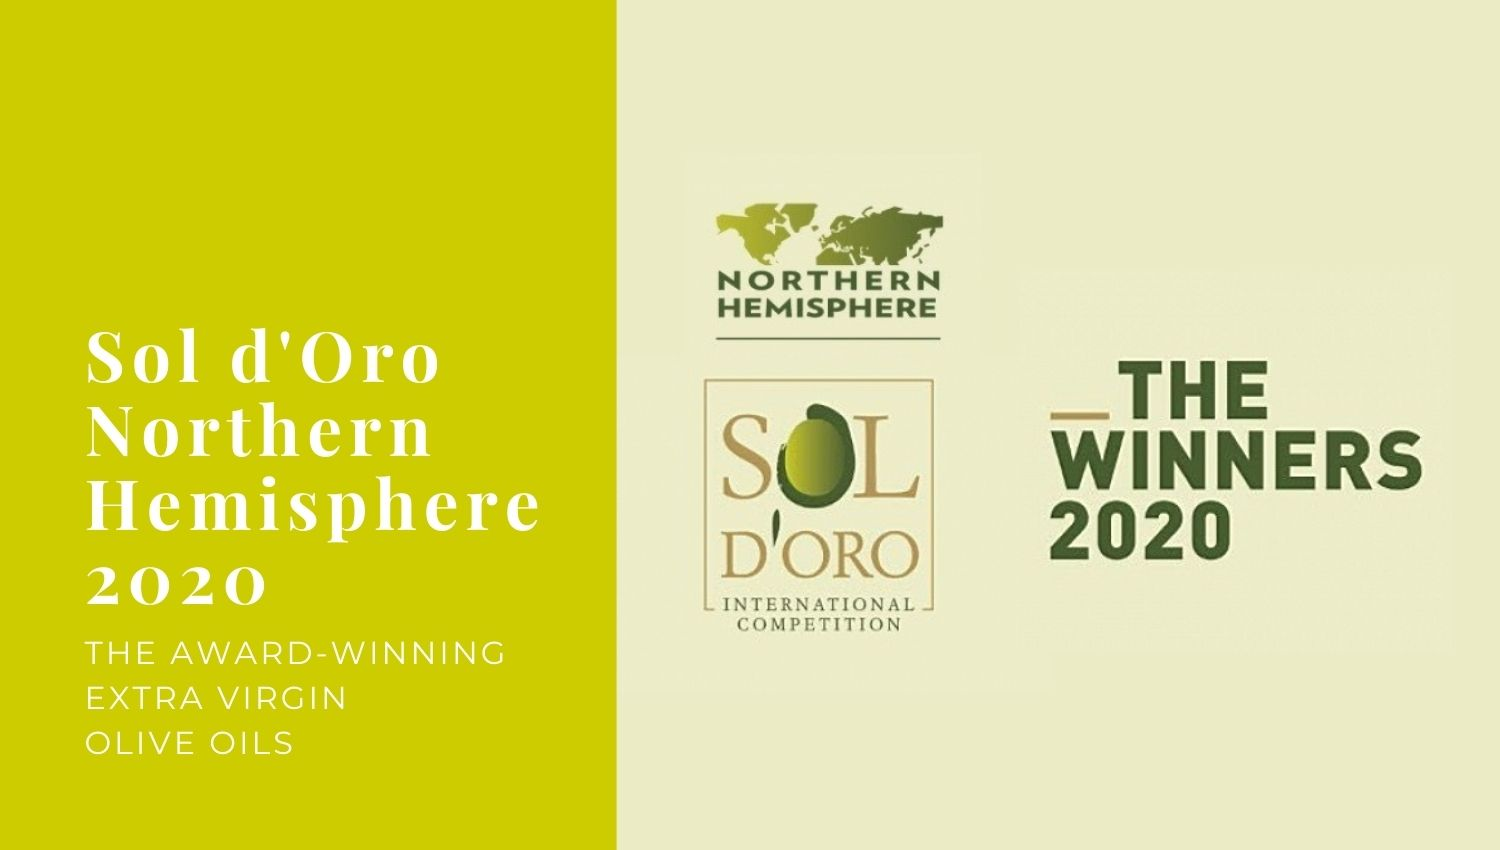 Sol d'Oro Northern Hemisphere – 2020 Winners